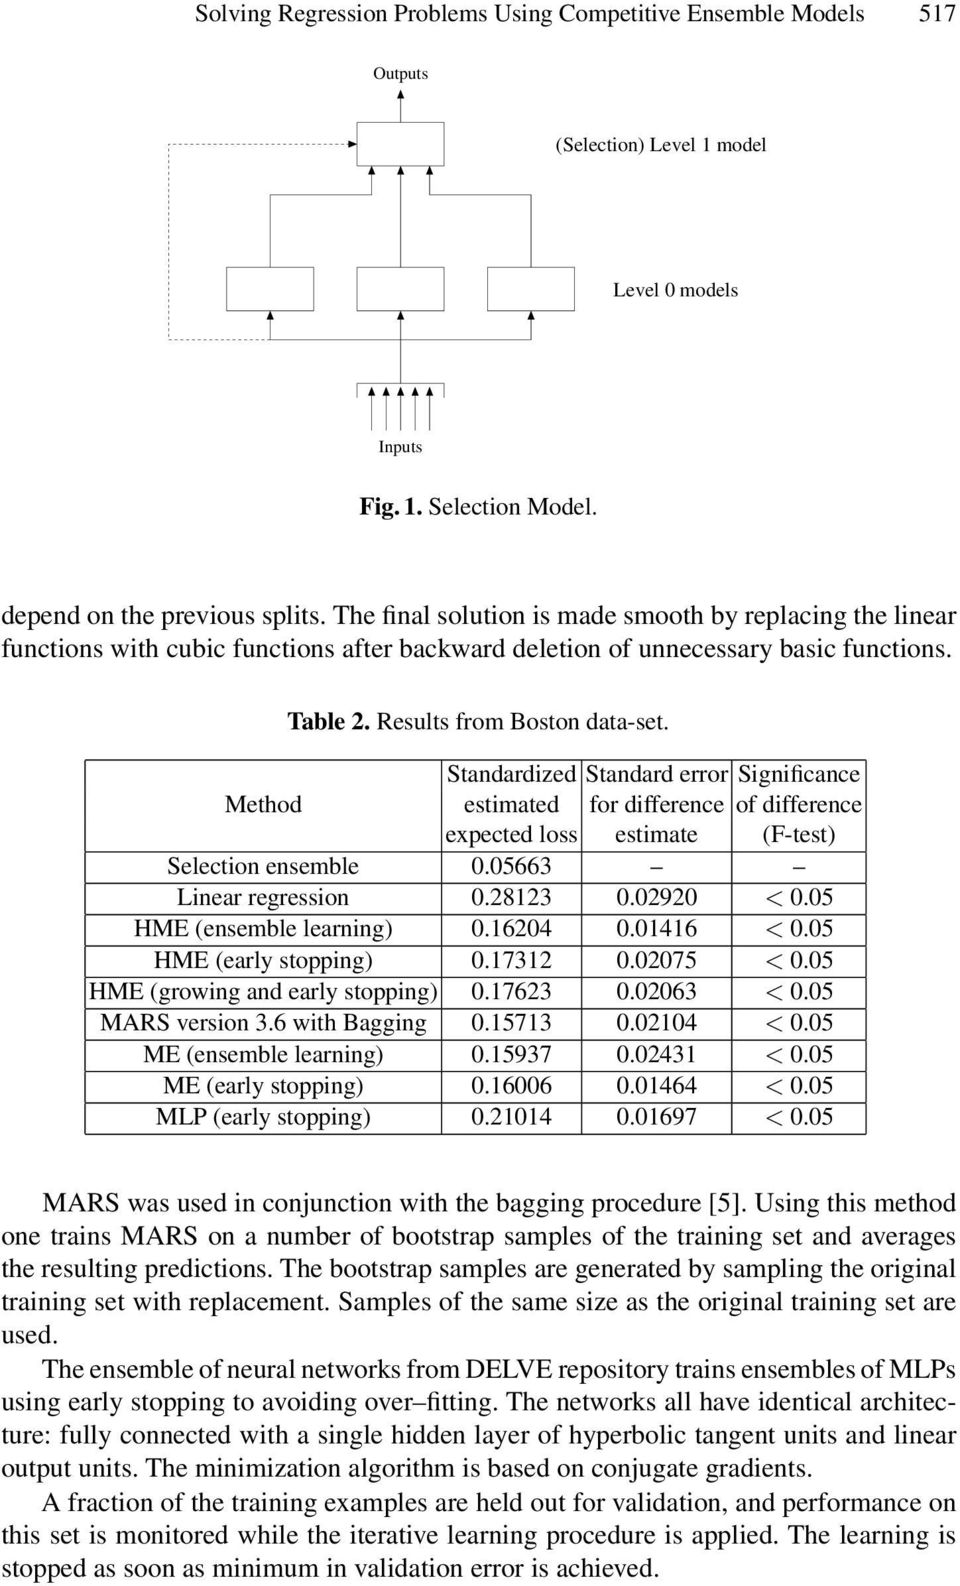 Standardized Standard error Significance Method estimated for difference of difference expected loss estimate (F-test) Selection ensemble 0.05663 Linear regression 0.28123 0.02920 < 0.